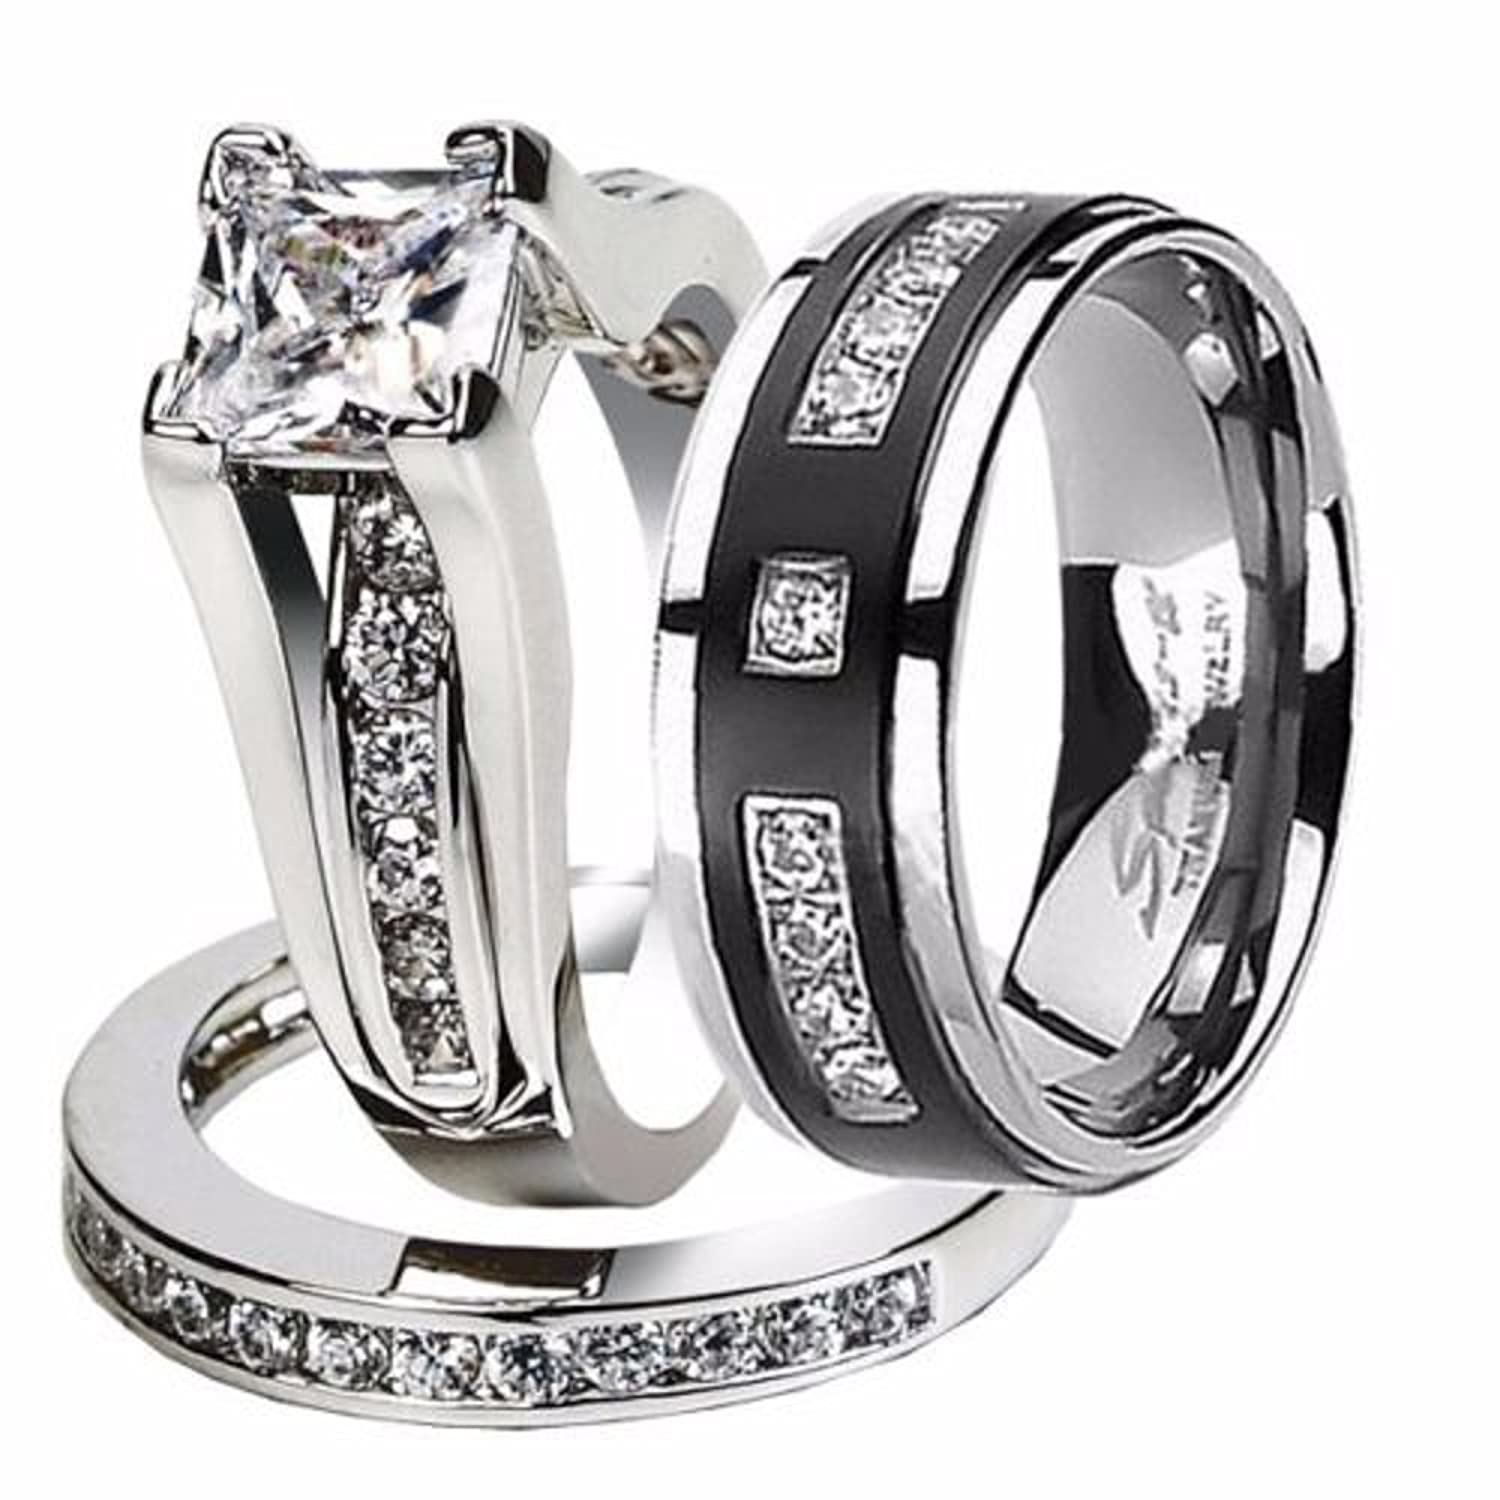 aluminum fullxfull aaxo and anniversary zambia year ring rings set hammered band of il bands platinum best his wedding sets